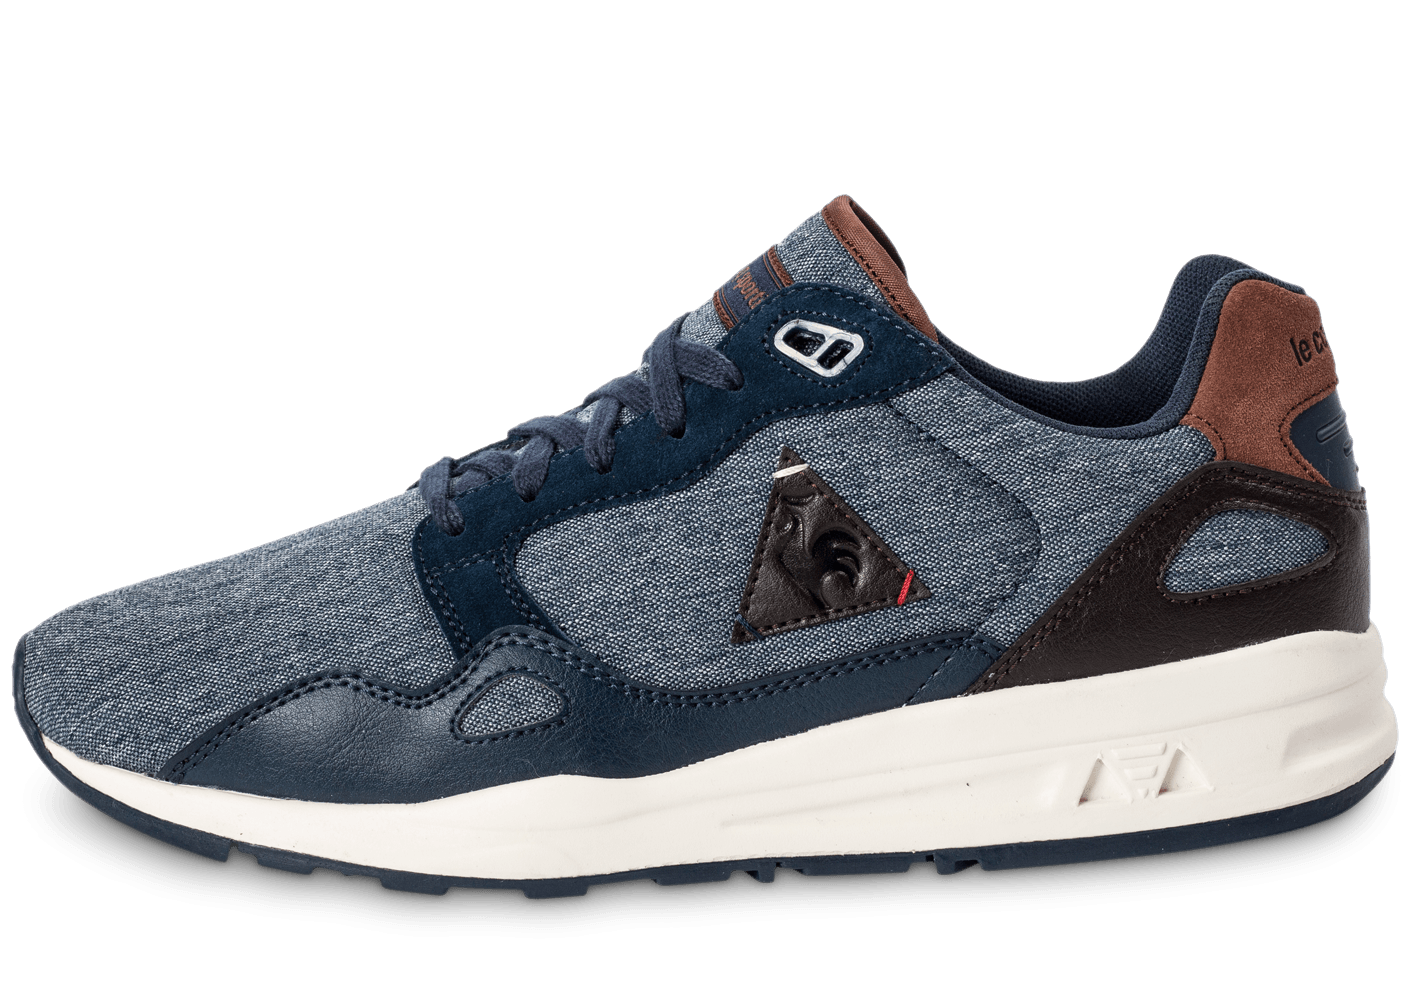 le coq sportif lcs r900 2 tones bleu marine chaussures homme chausport. Black Bedroom Furniture Sets. Home Design Ideas